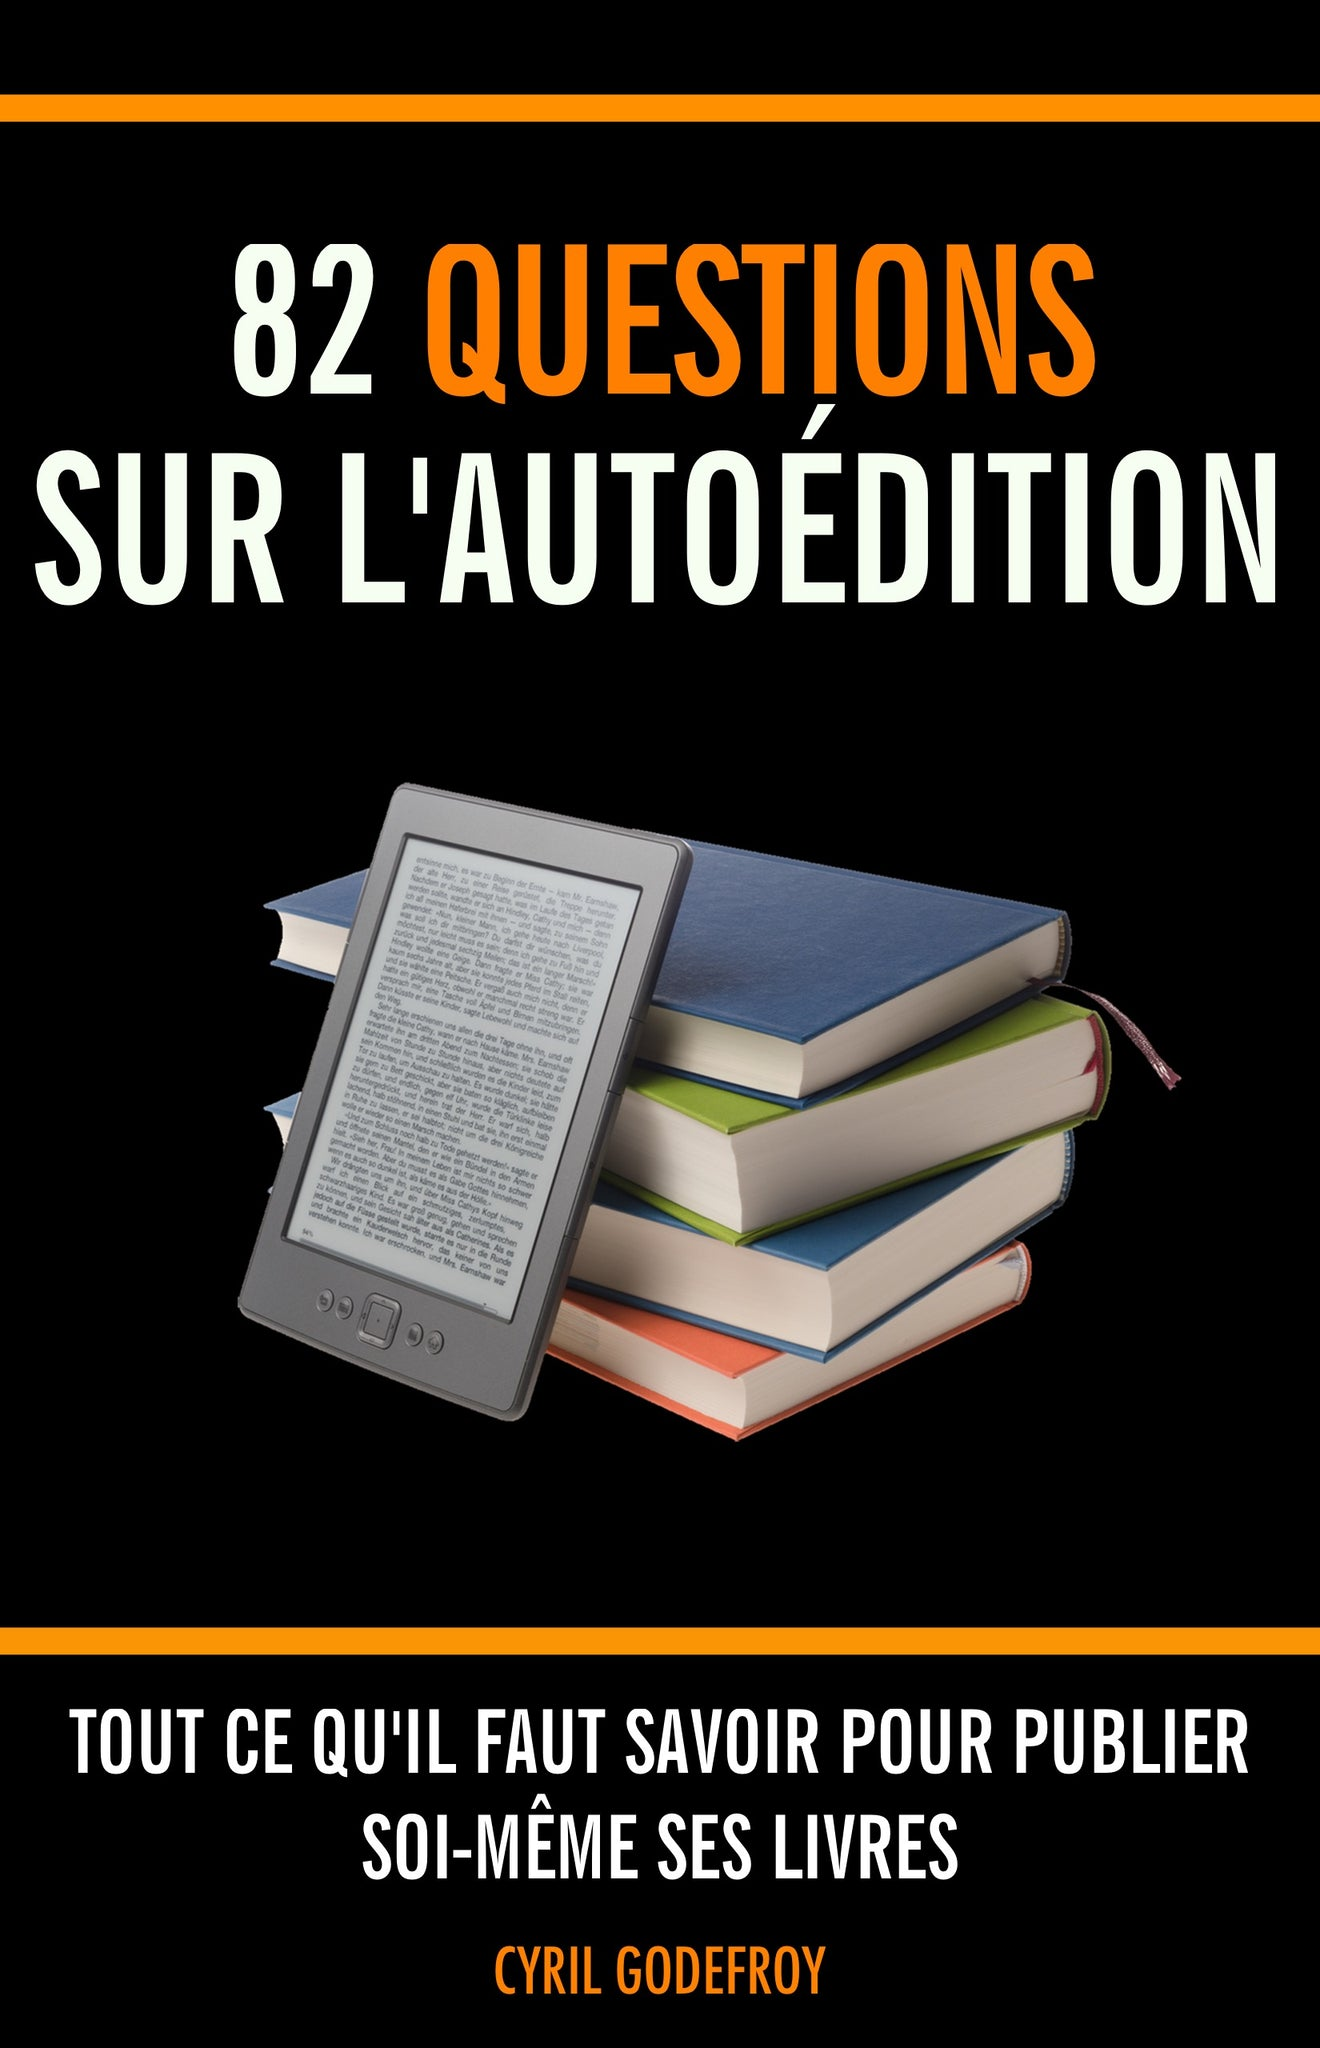 82 questions sur l'autoédition - ebook